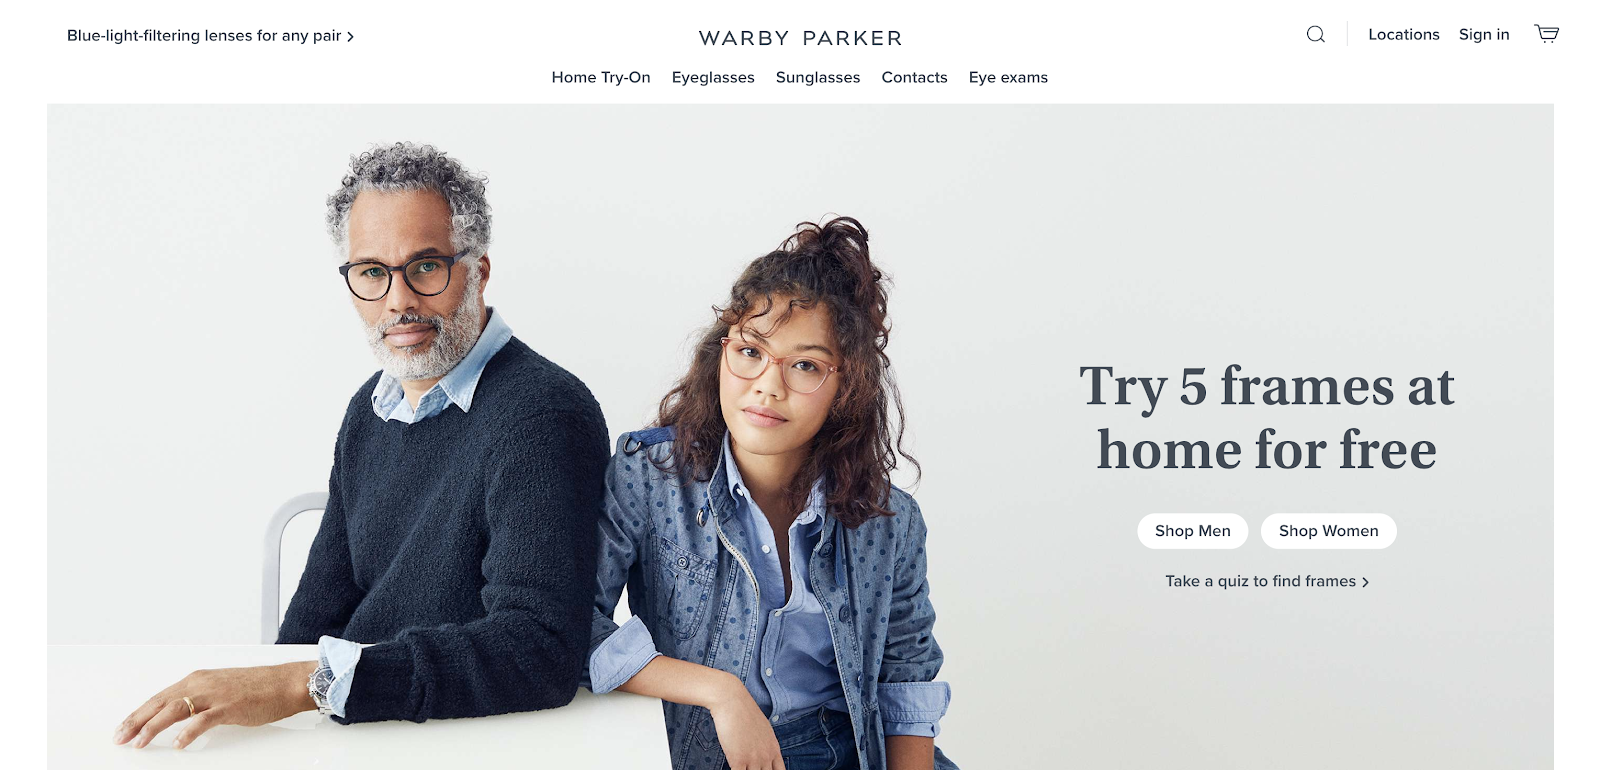 Warby Parker Homepage Screenshot (Original eCommerce Website Example)